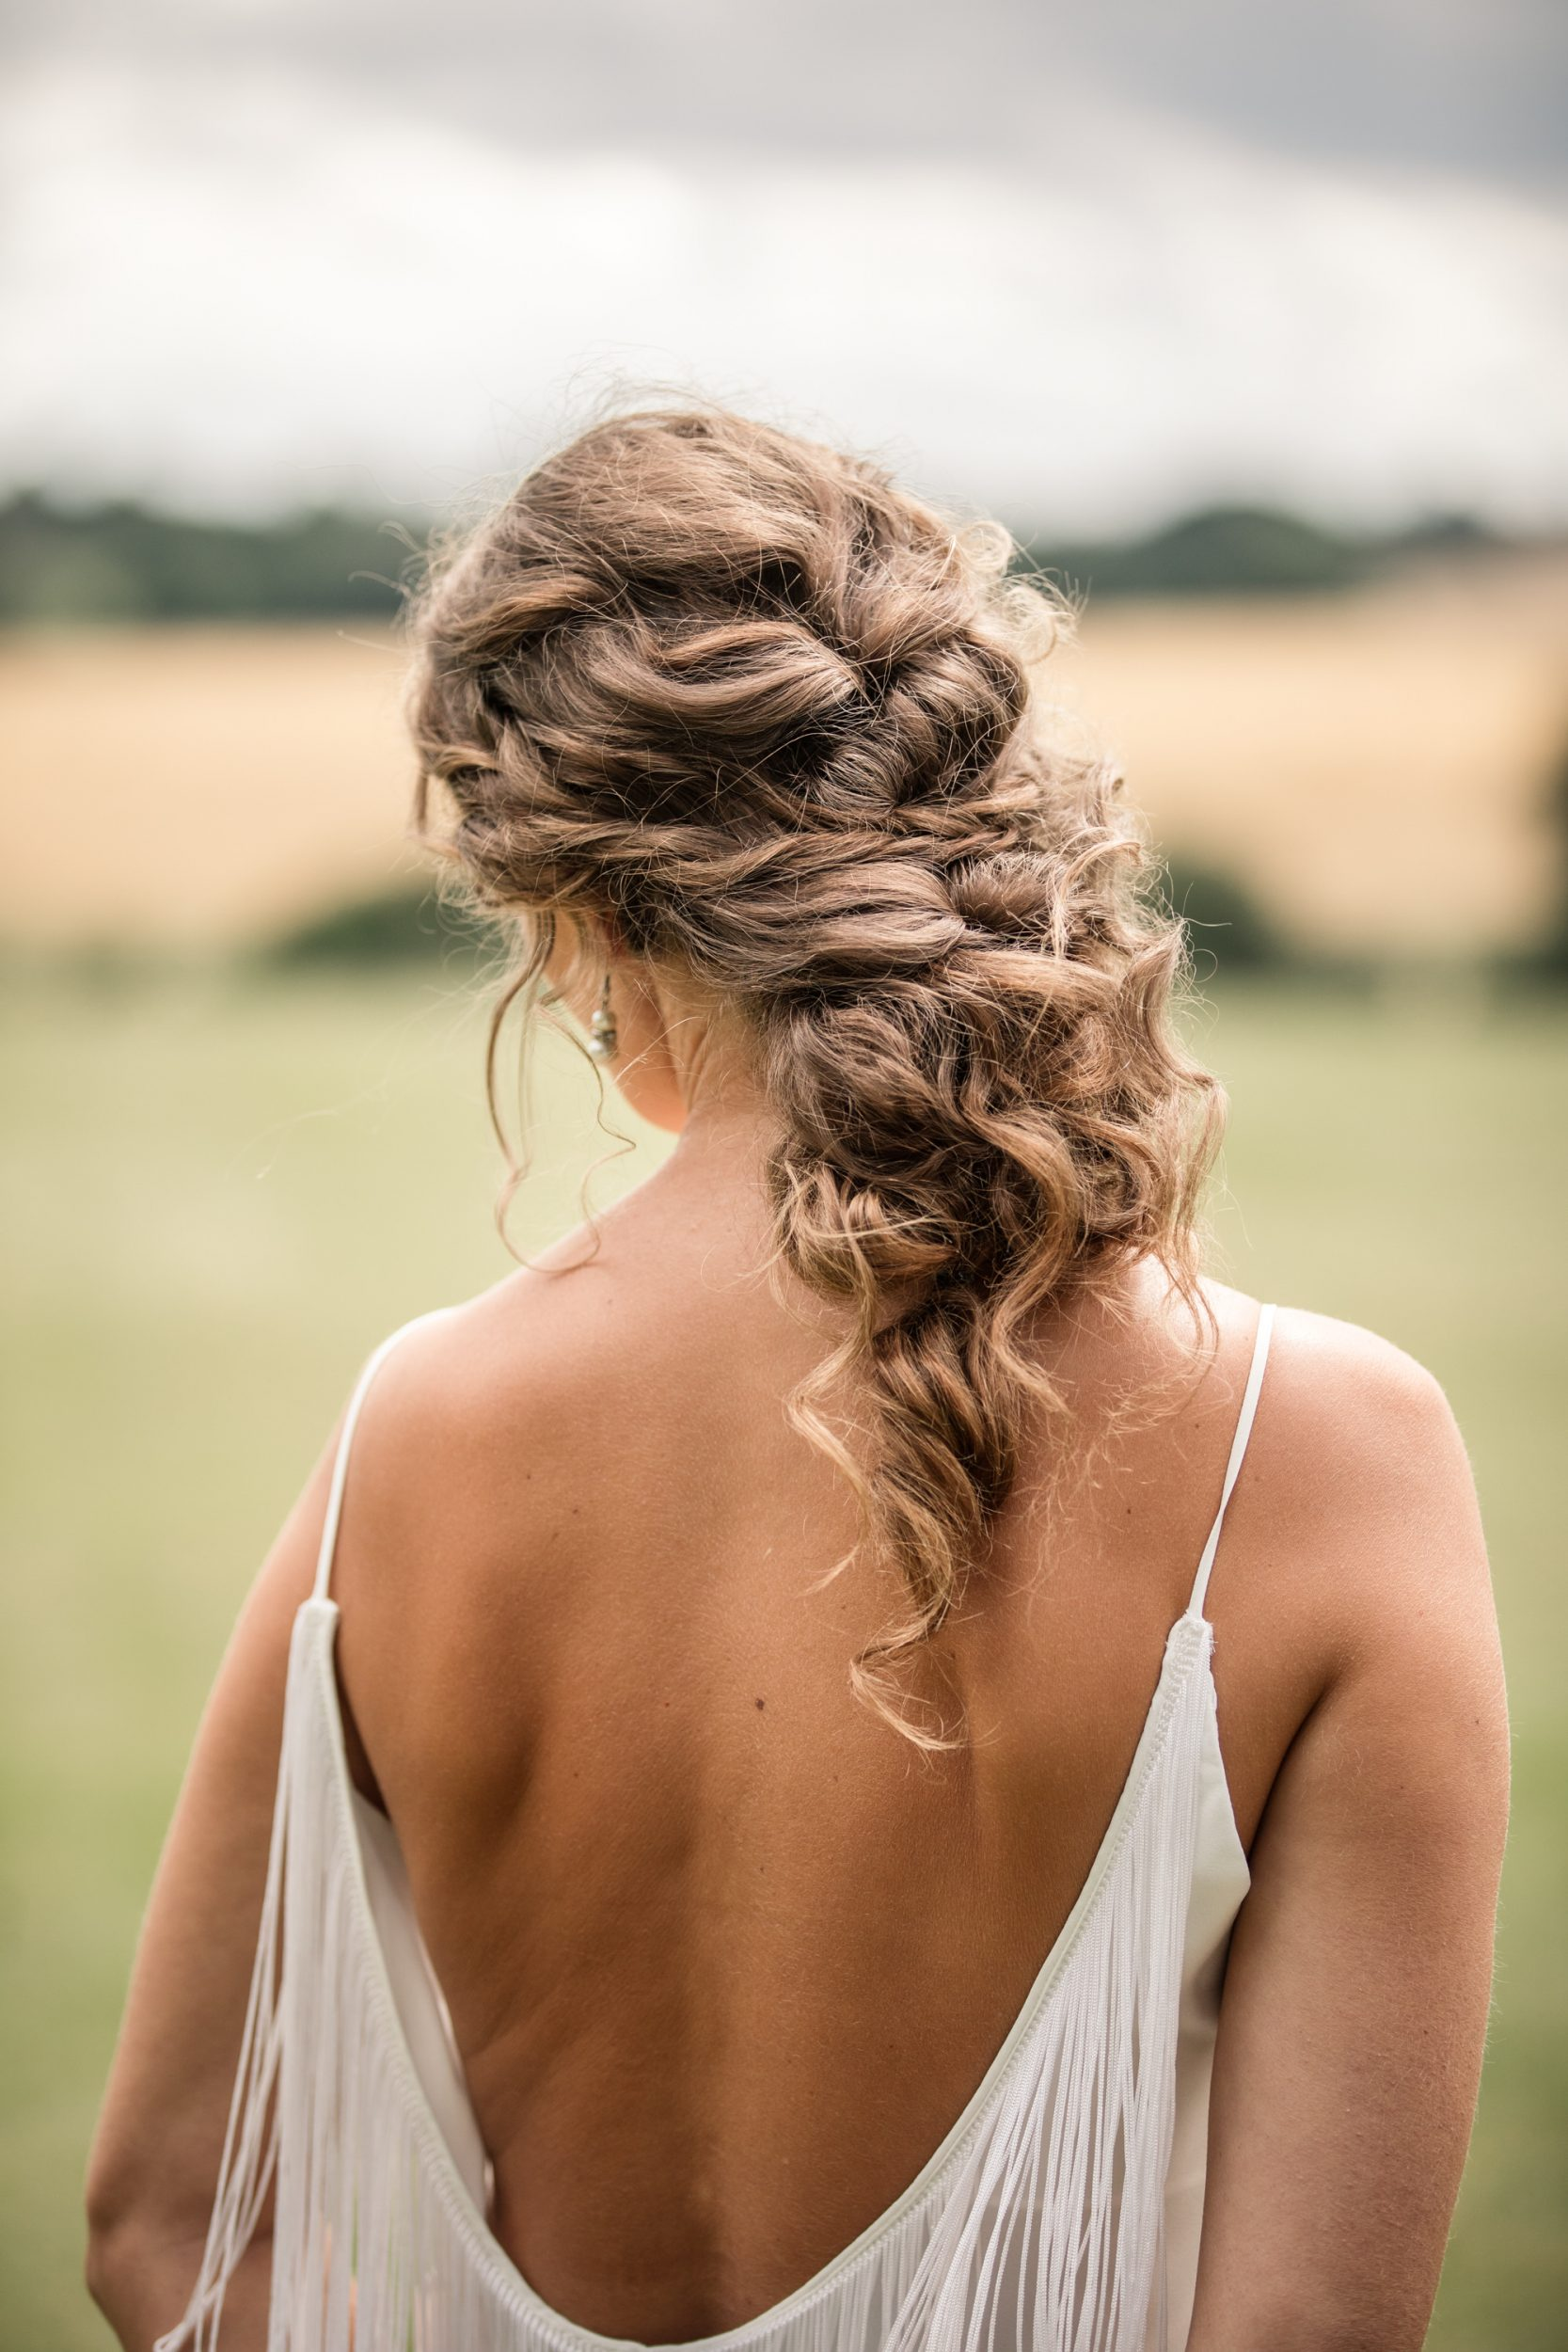 Bride at Styled Suffolk wedding shoot